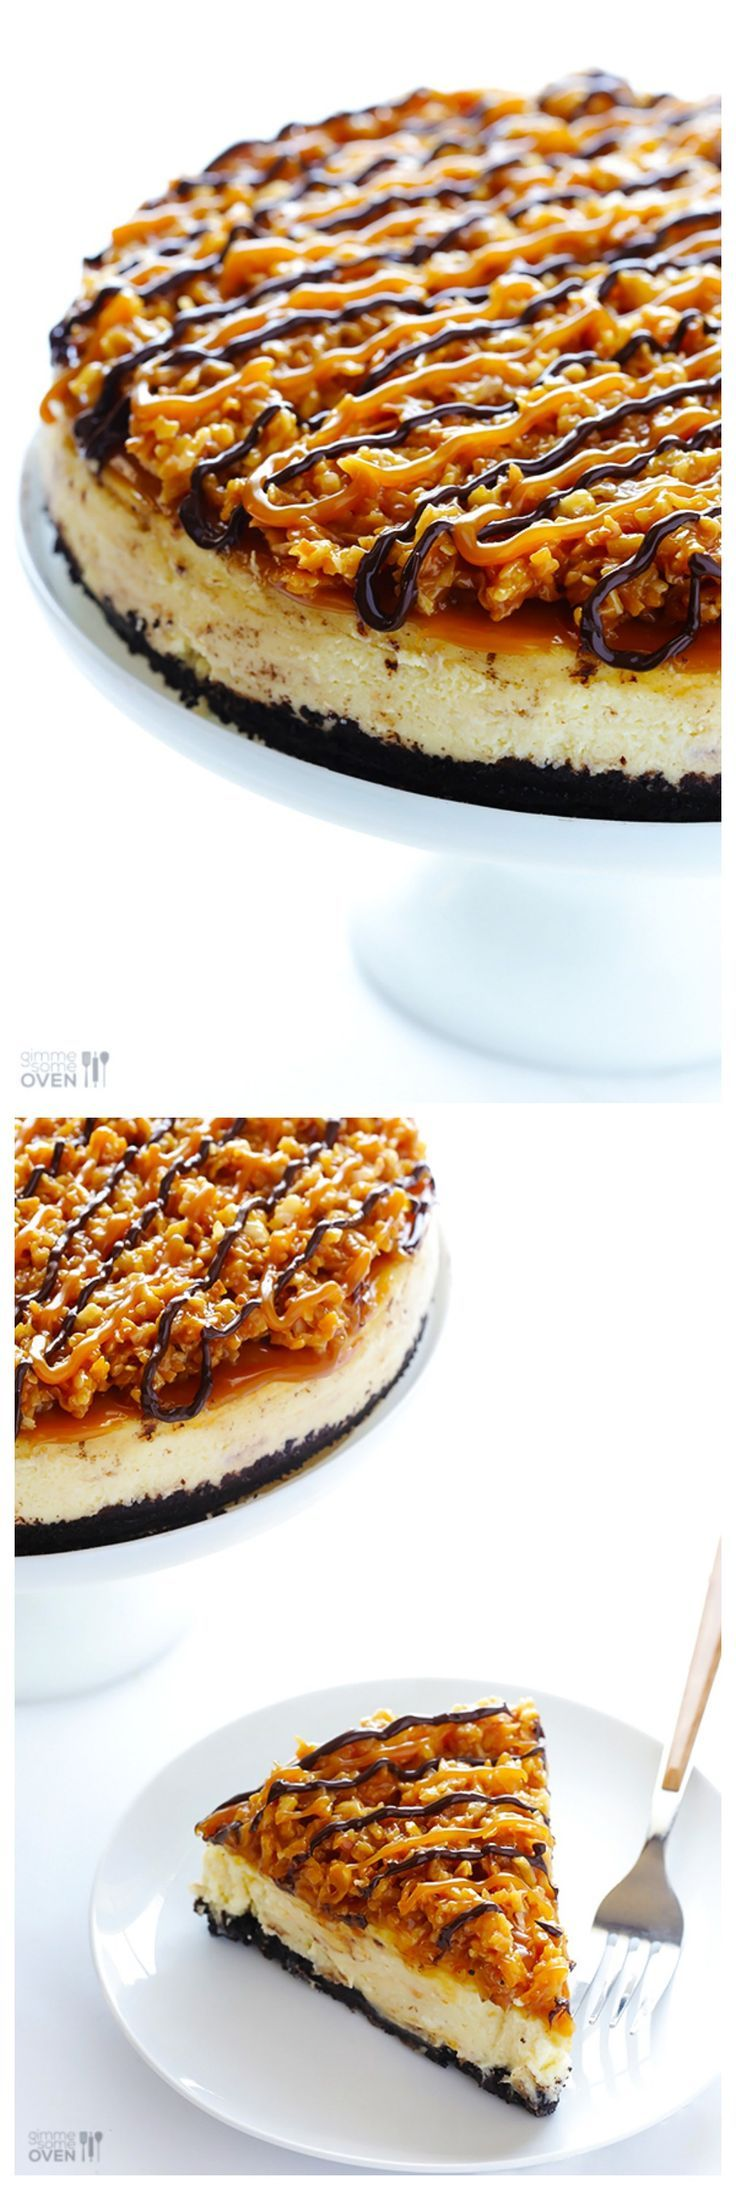 Samoa Cheesecake (a.k.a. Caramel DeLite Cheesecake) -- simple to make, and inspired by the famous Girl Scout cookies! gimmesomeoven.com #dessert